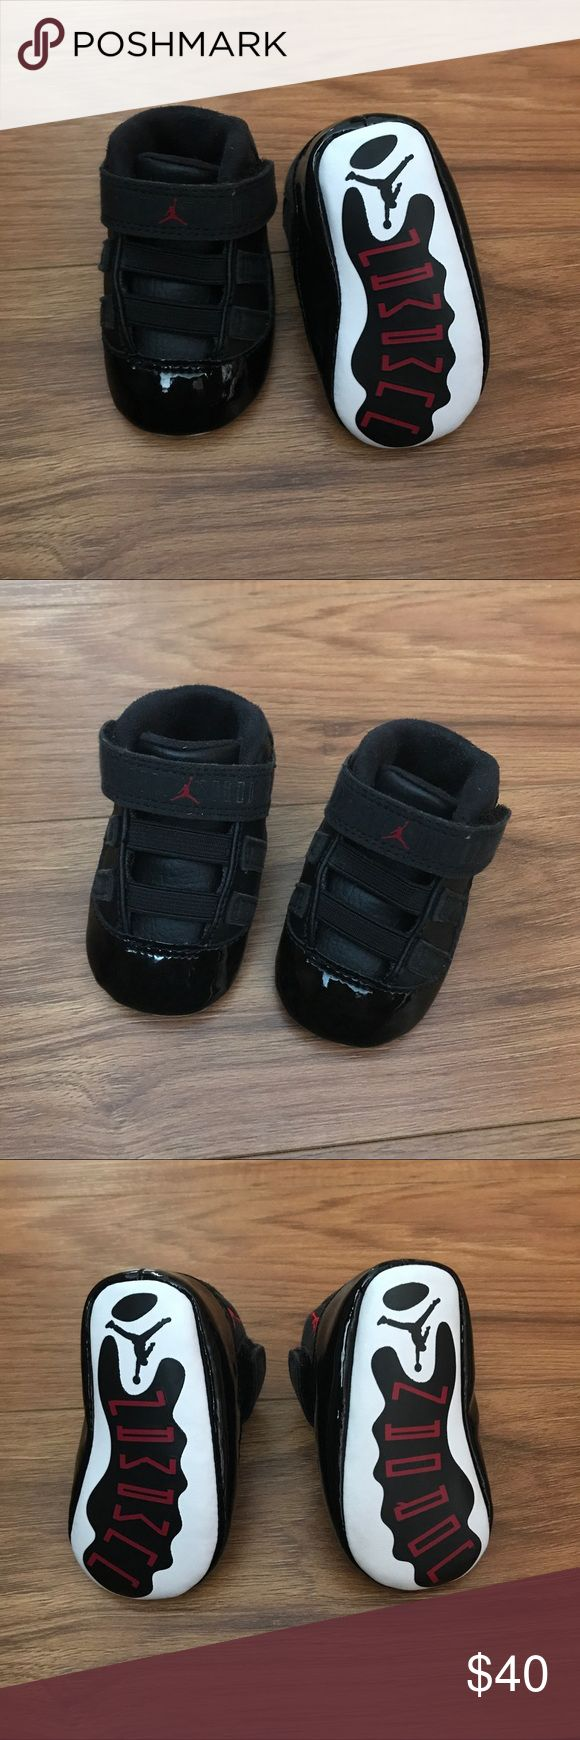 SALEJordan 1C Infant Shoes $35 IS MY LOWEST! Worn by a non-walking infant. Look brand new! Jordan Shoes Sneakers